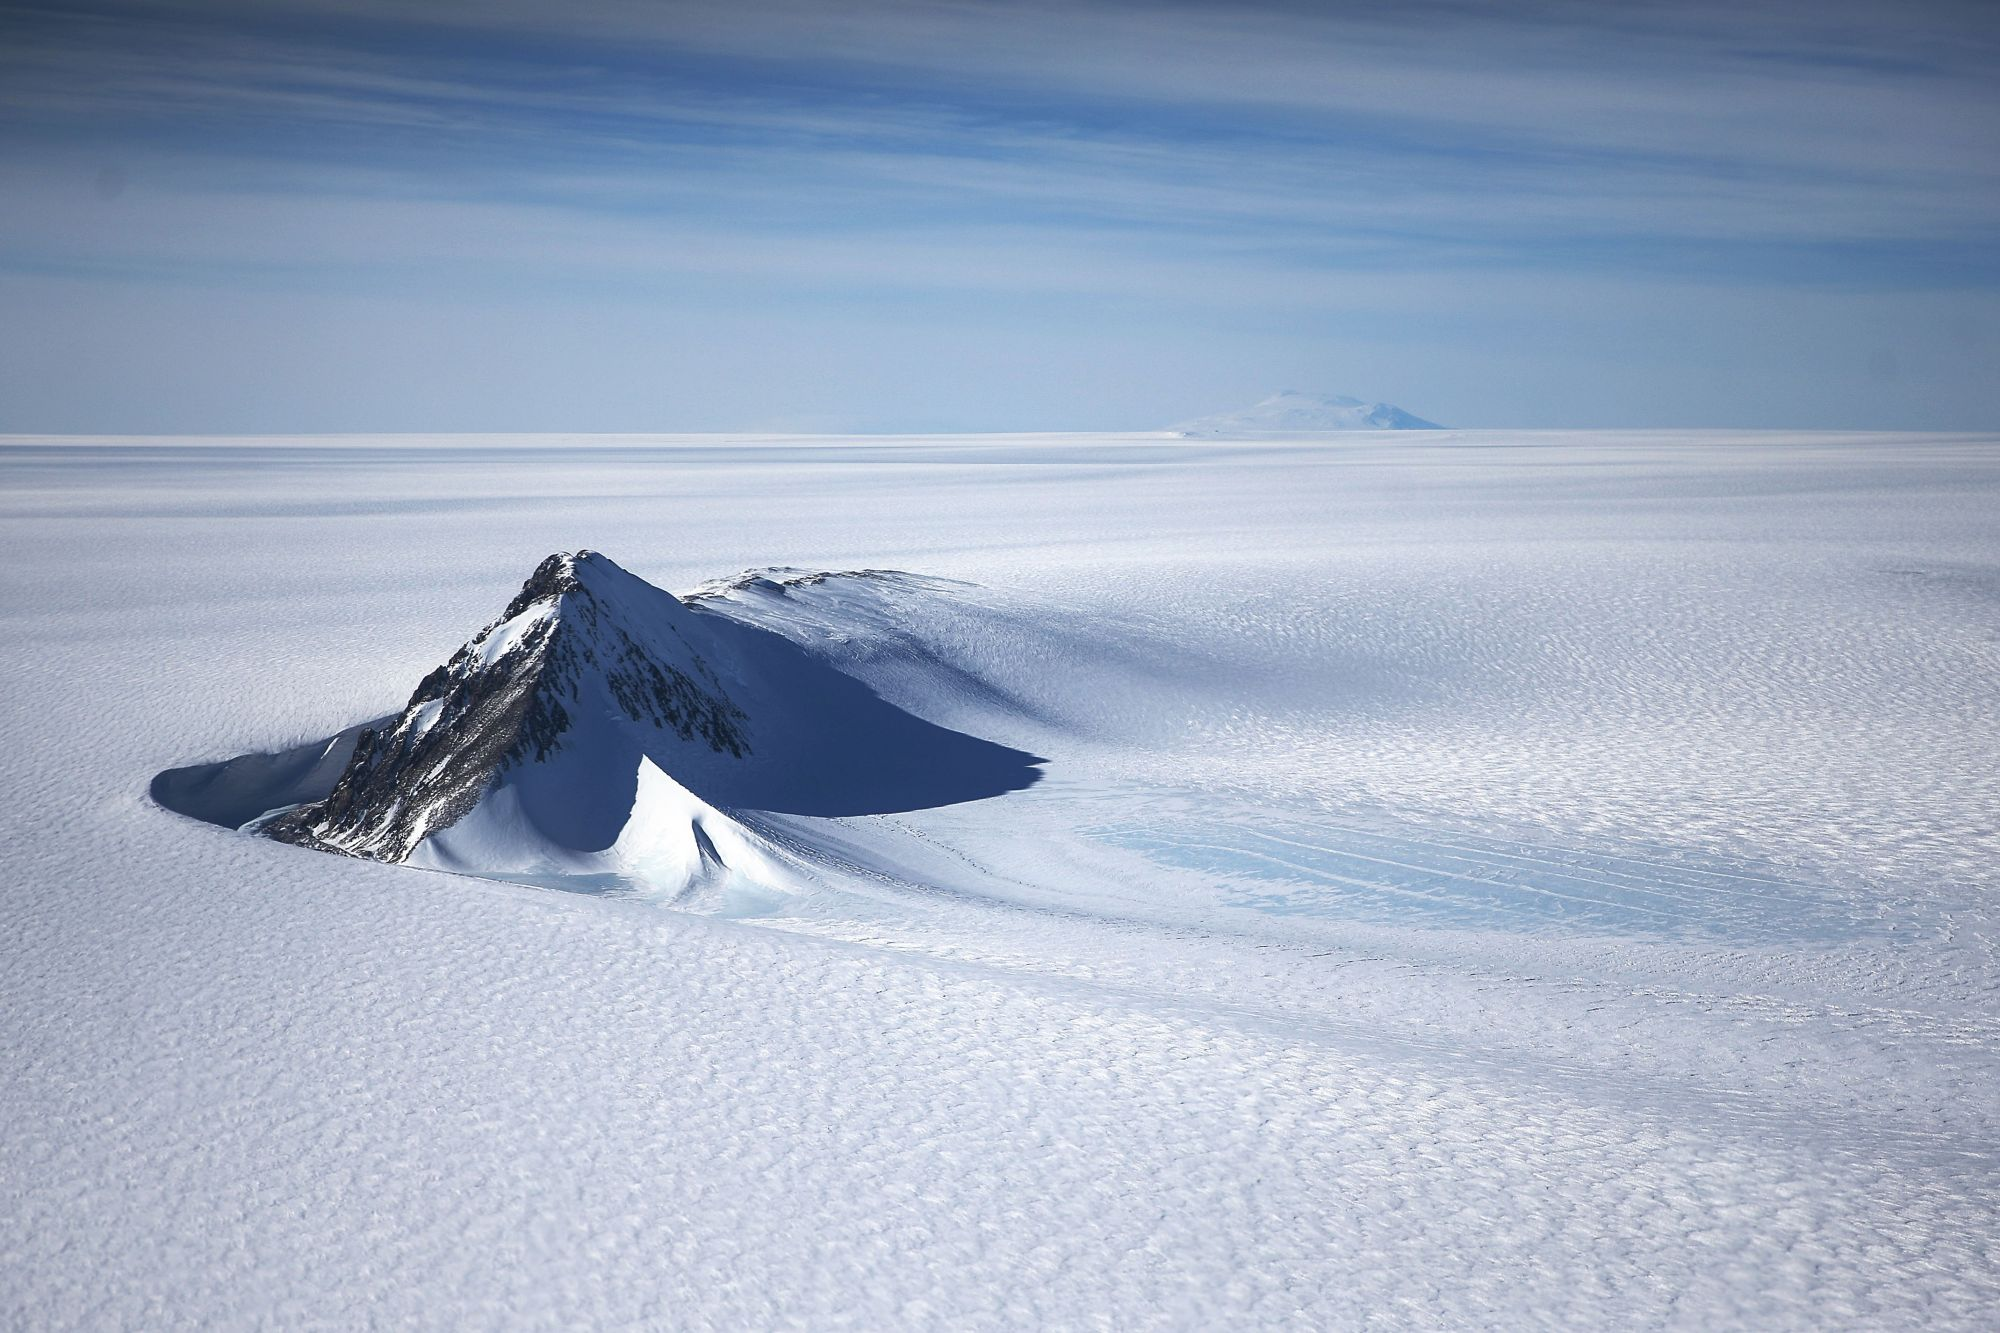 ANTARCTICA - OCTOBER 28:  A section of the West Antarctic Ice Sheet with mountains is viewed from a window of a NASA Operation IceBridge airplane on October 28, 2016 in-flight over Antarctica. NASA's Operation IceBridge has been studying how polar ice has evolved over the past eight years and is currently flying a set of 12-hour research flights over West Antarctica at the start of the melt season. Researchers have used the IceBridge data to observe that the West Antarctic Ice Sheet may be in a state of irr